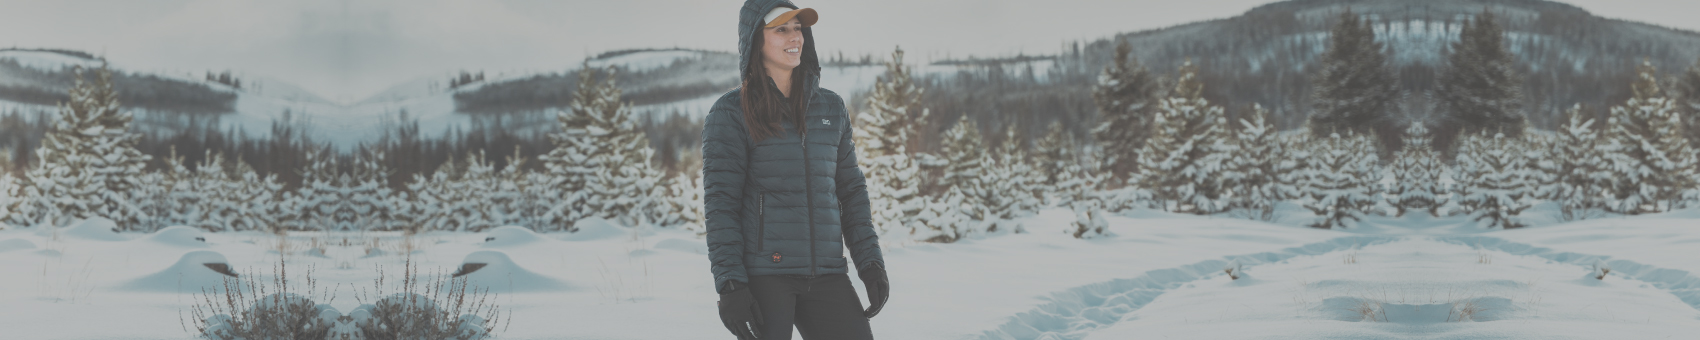 Heated Jackets For Women